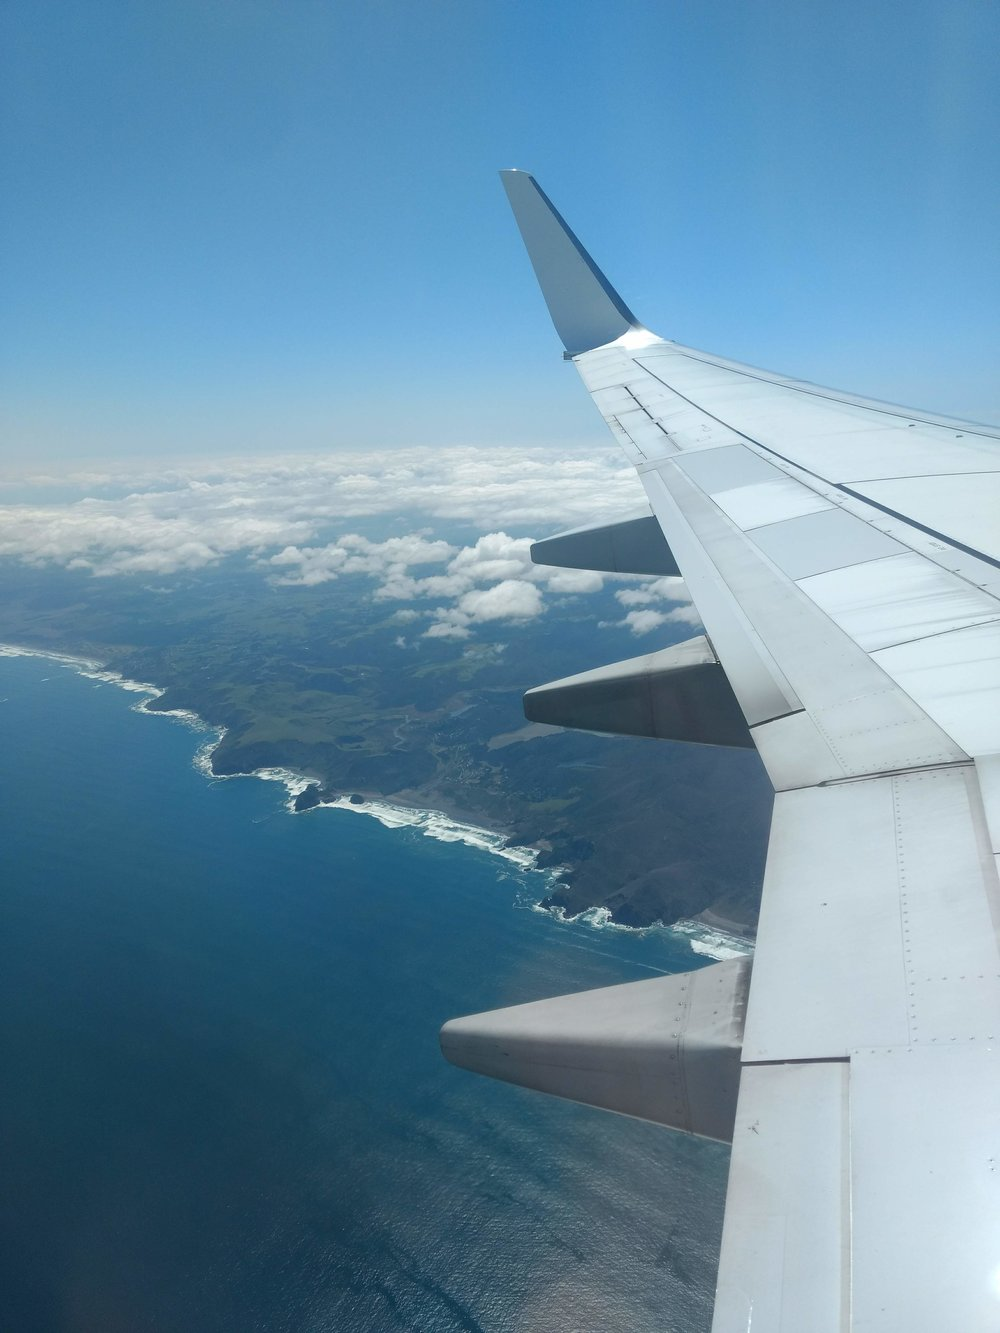 The first sight of the NZ coast.